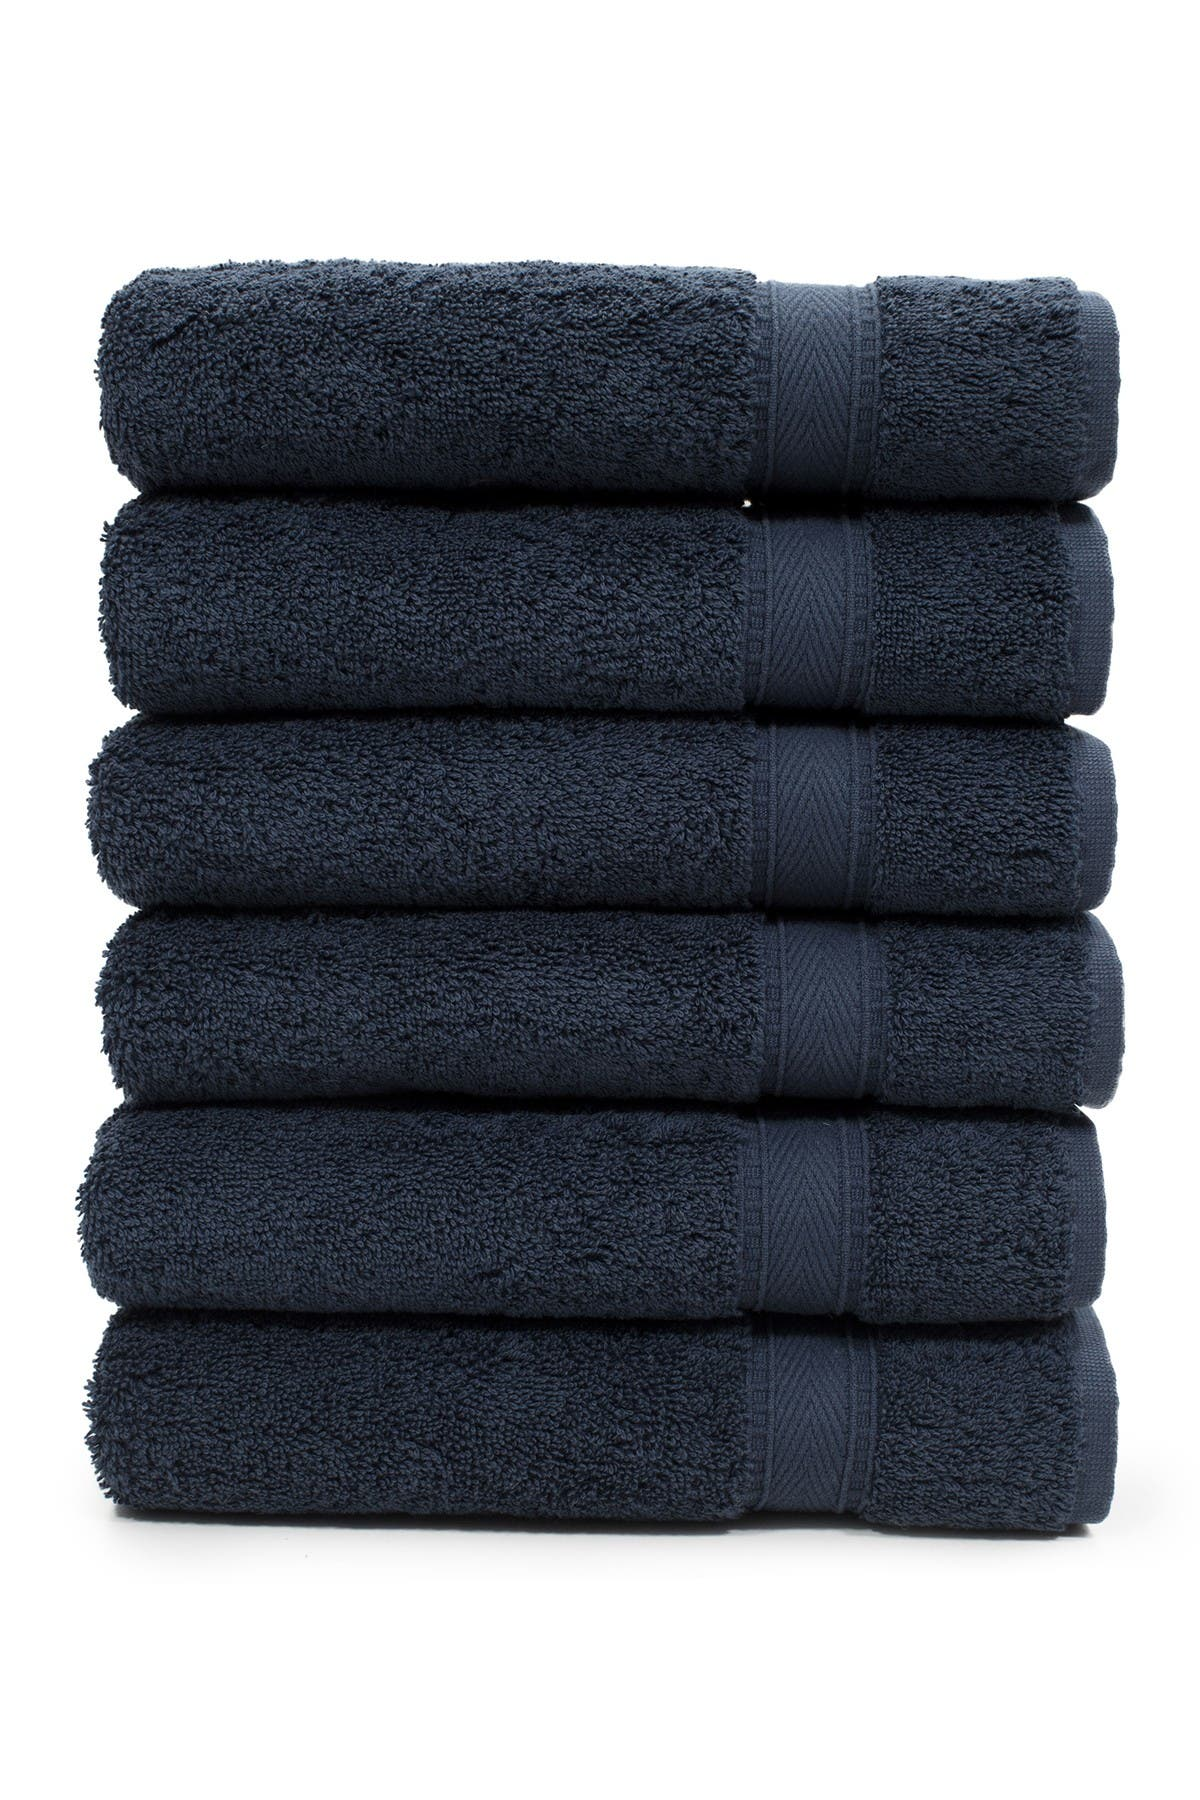 Image of LINUM HOME Sinemis Terry Hand Towels - Set of 6 - Navy